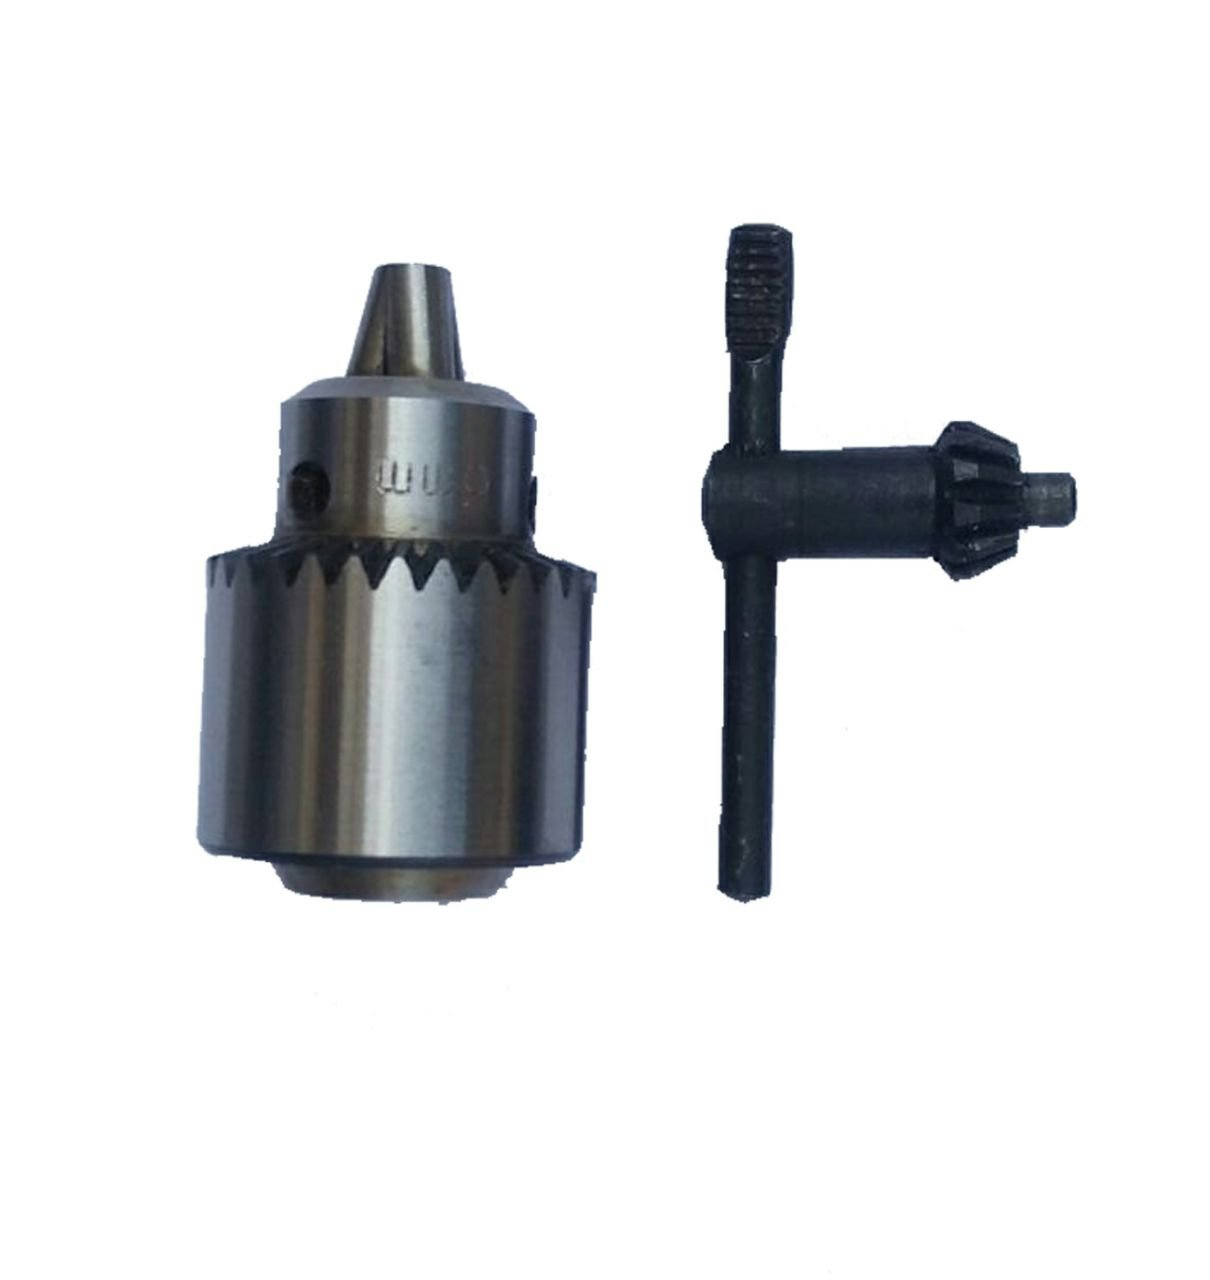 HumserTM 10mm Mini Drill Chuck